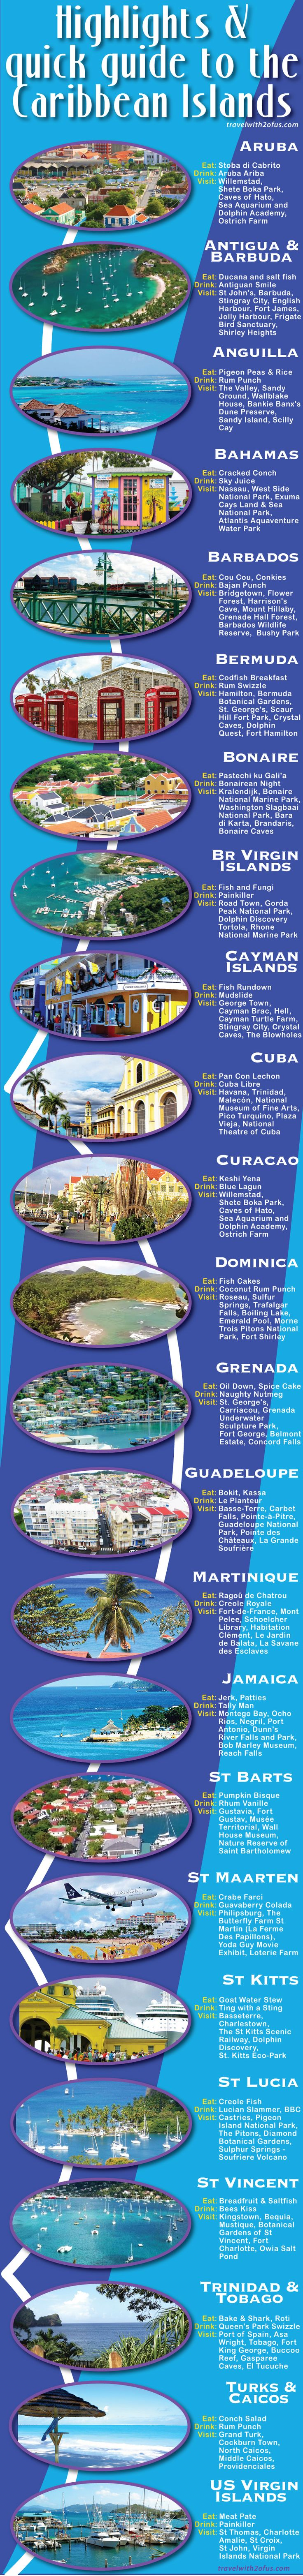 The Caribbean Islands, a large chain of amazing tropical islands spread about in the beautiful waters of the Caribbean sea.